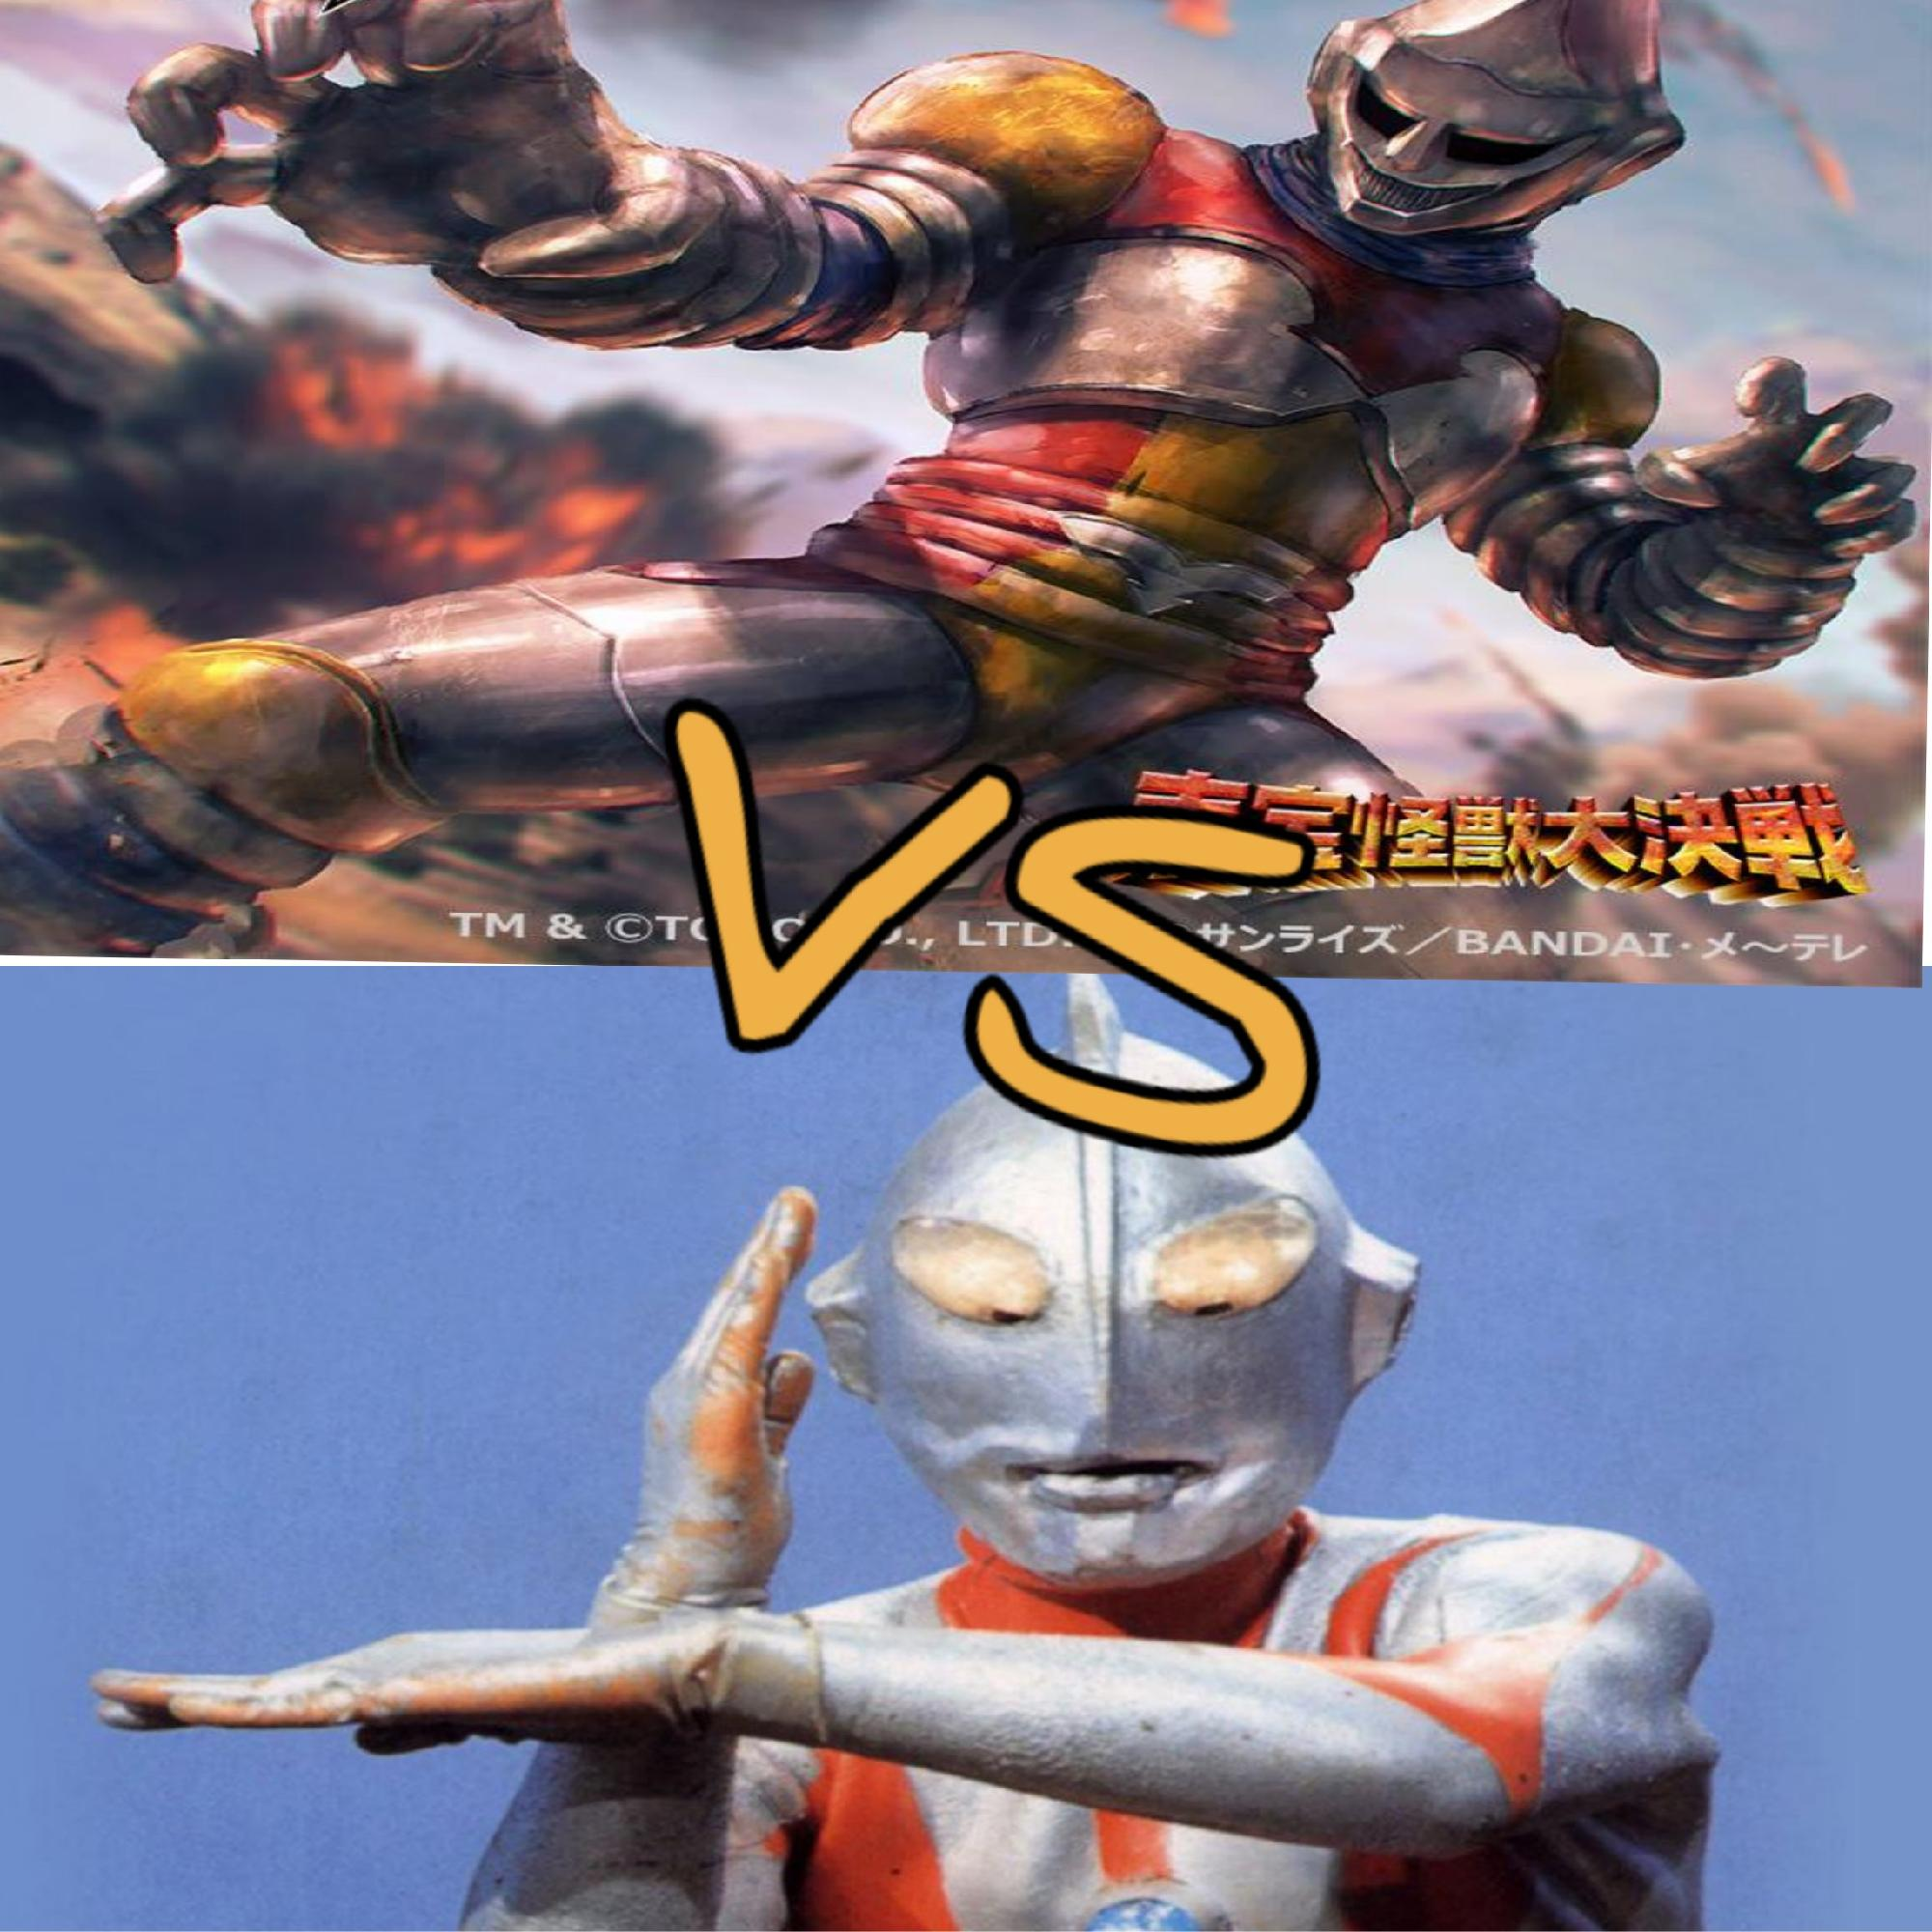 Jet jaguar vs Ultraman